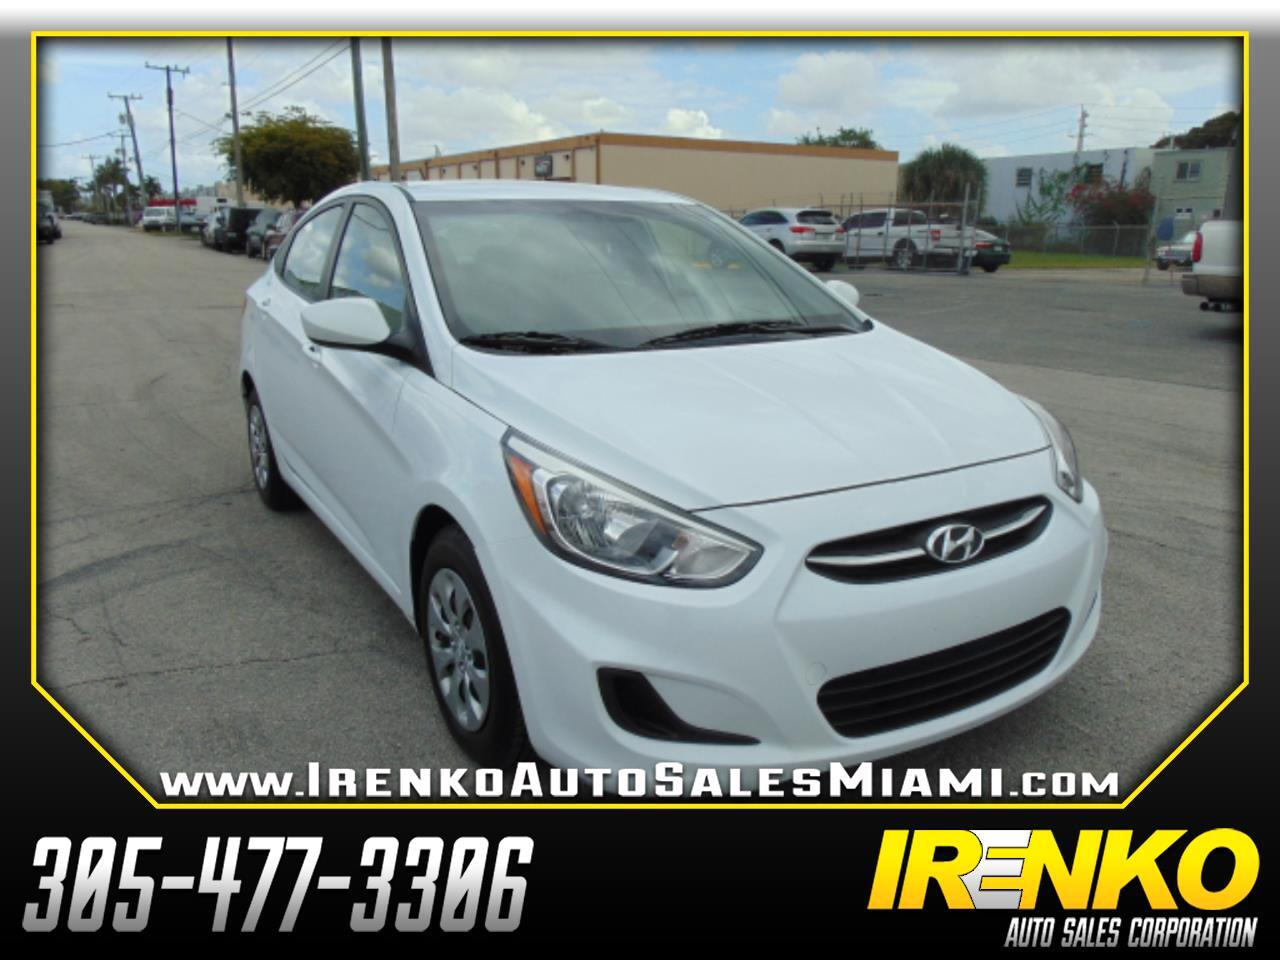 2017 Hyundai Accent SE Sedan Auto